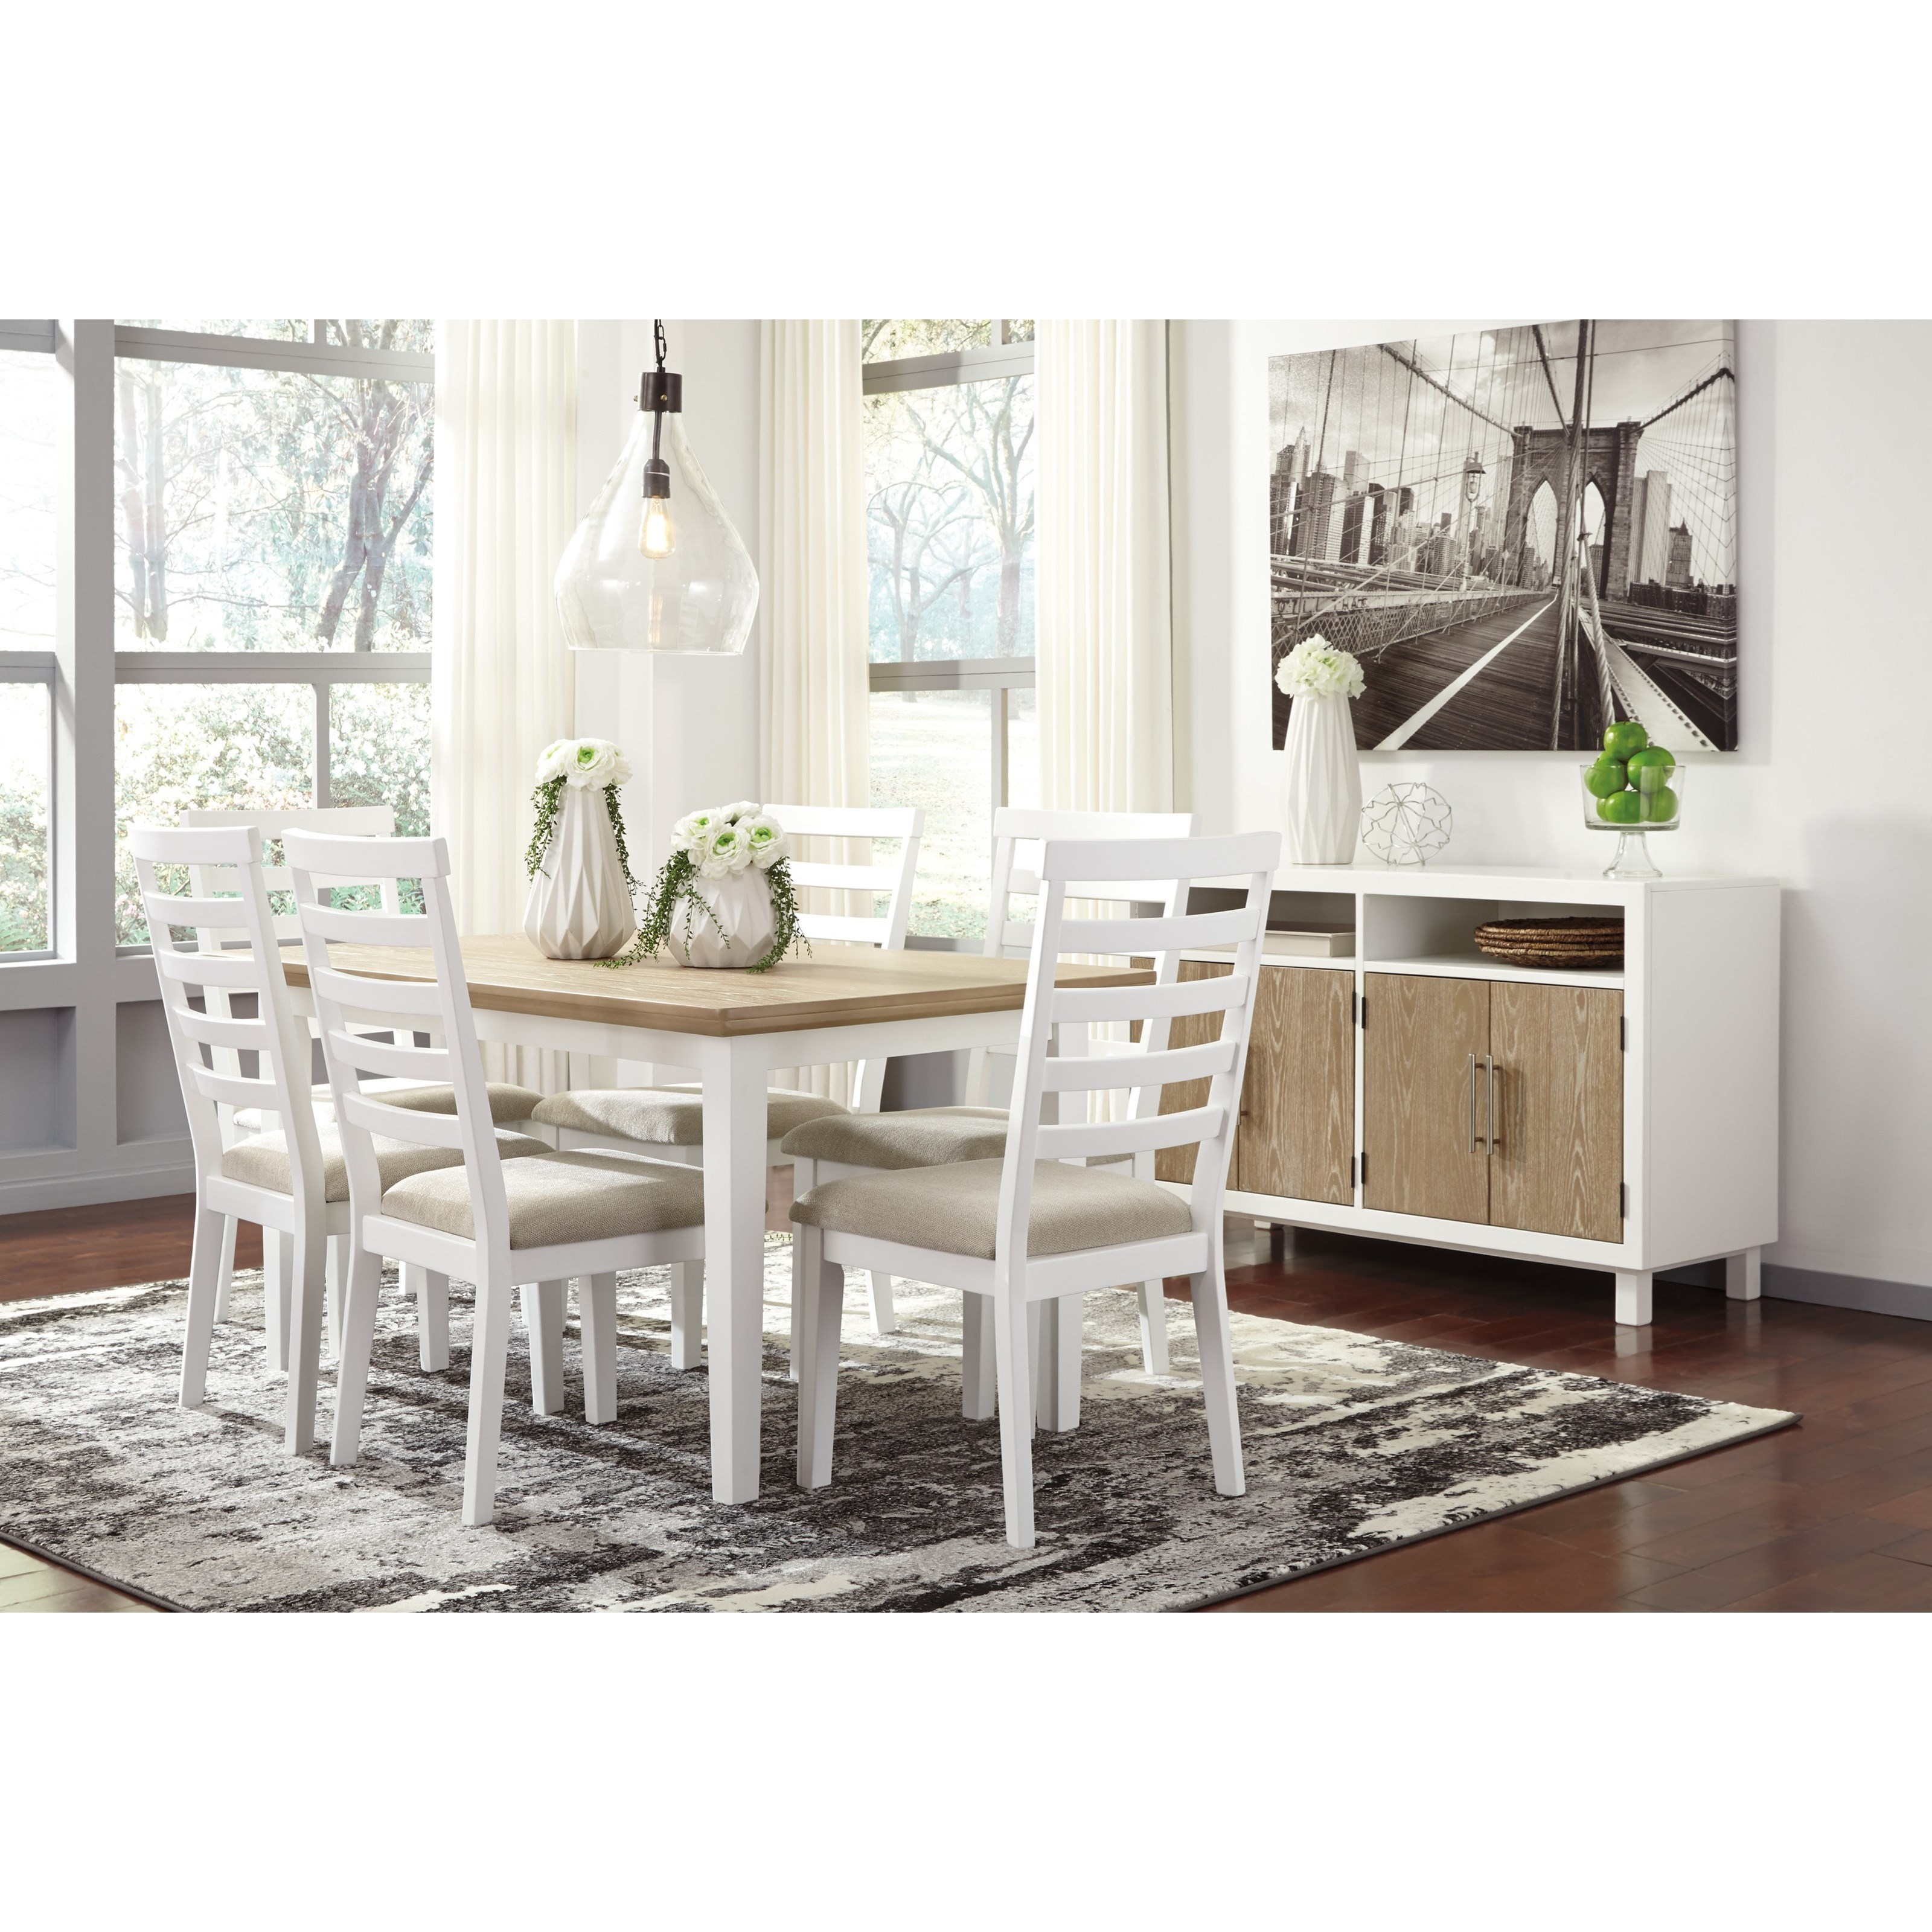 Signature Design By Ashley Gardomi Casual Dining Room Group   Item Number:  D632 Dining Room